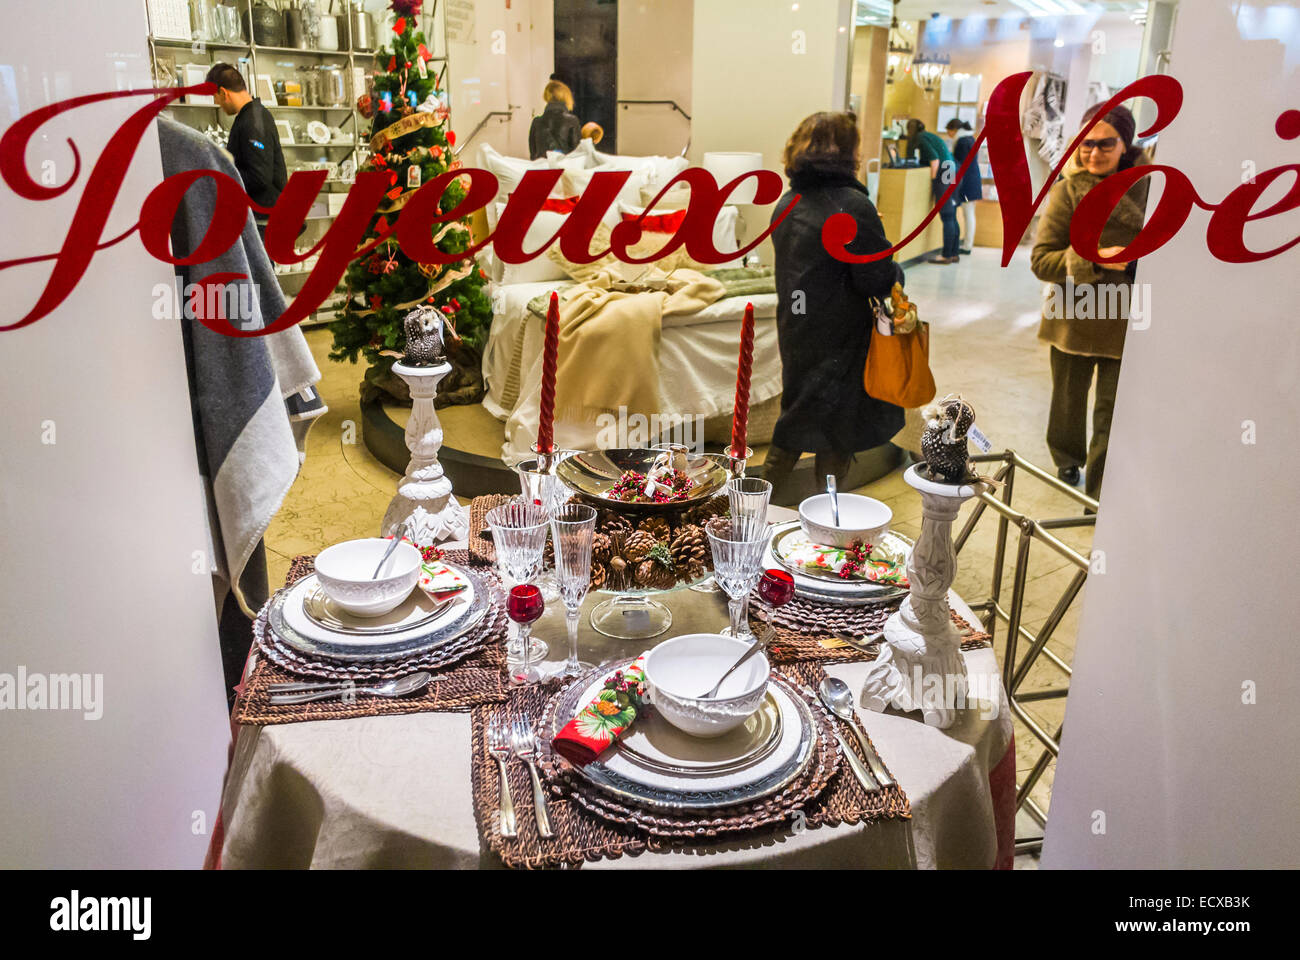 Paris France Inside Shop Front Window Display Christmas Table Stock Photo Royalty Free Image